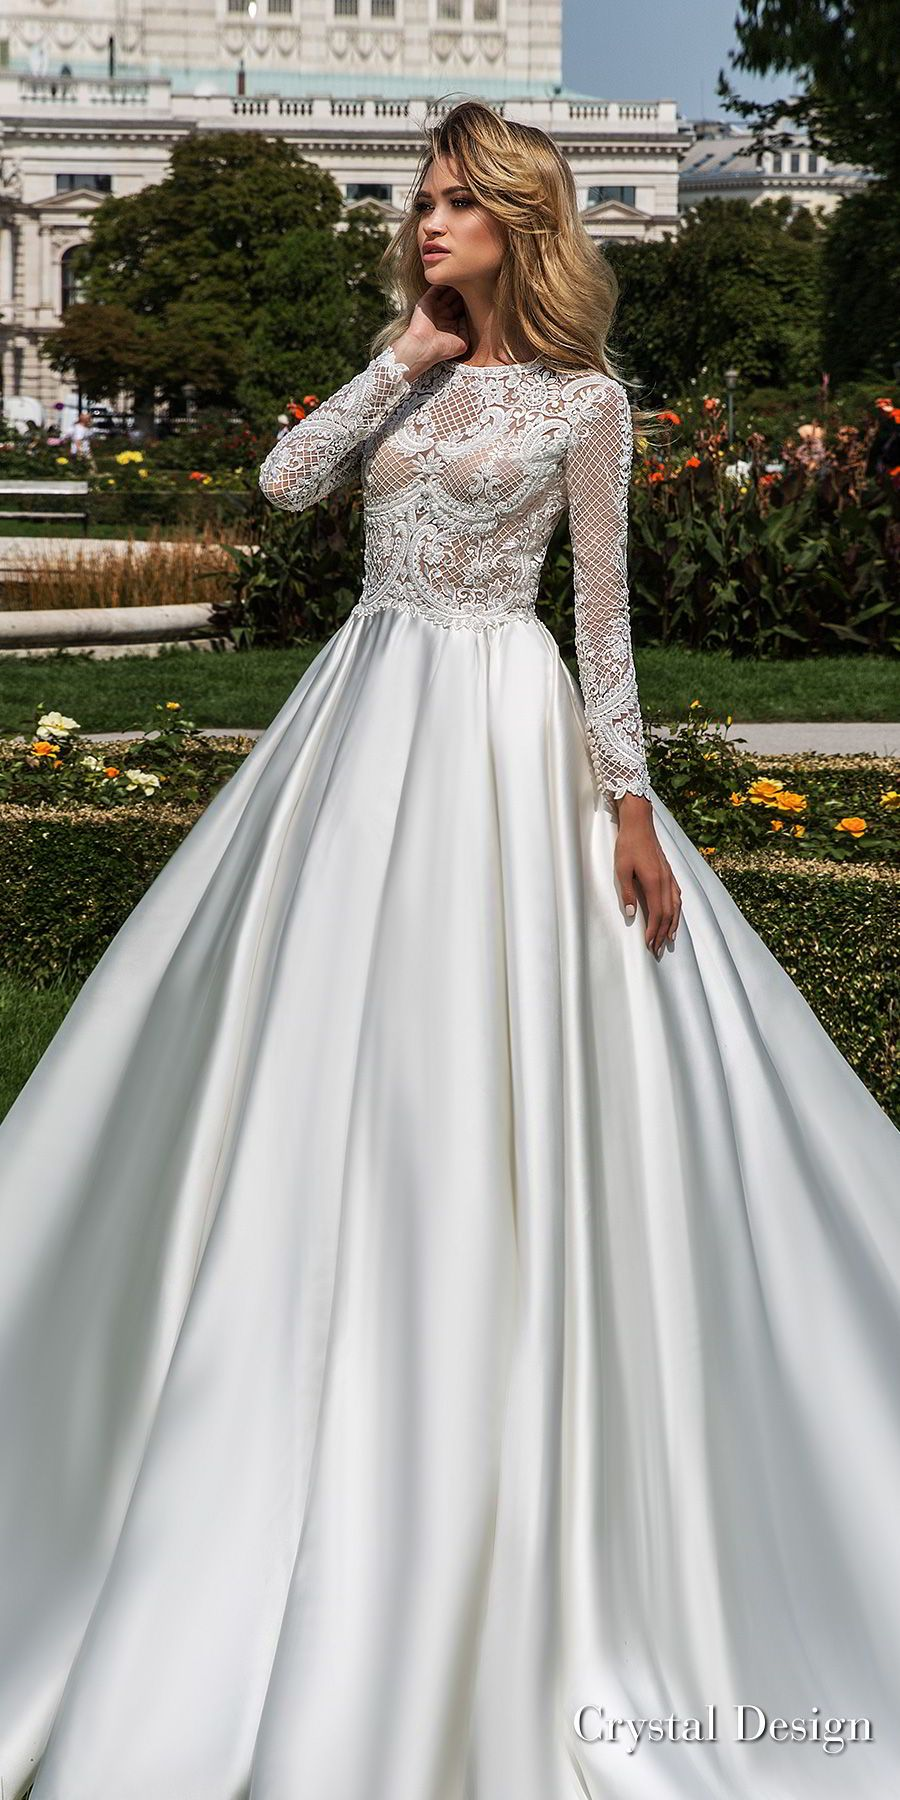 Crystal design wedding dresses u ucroyal gardenud u haute couture